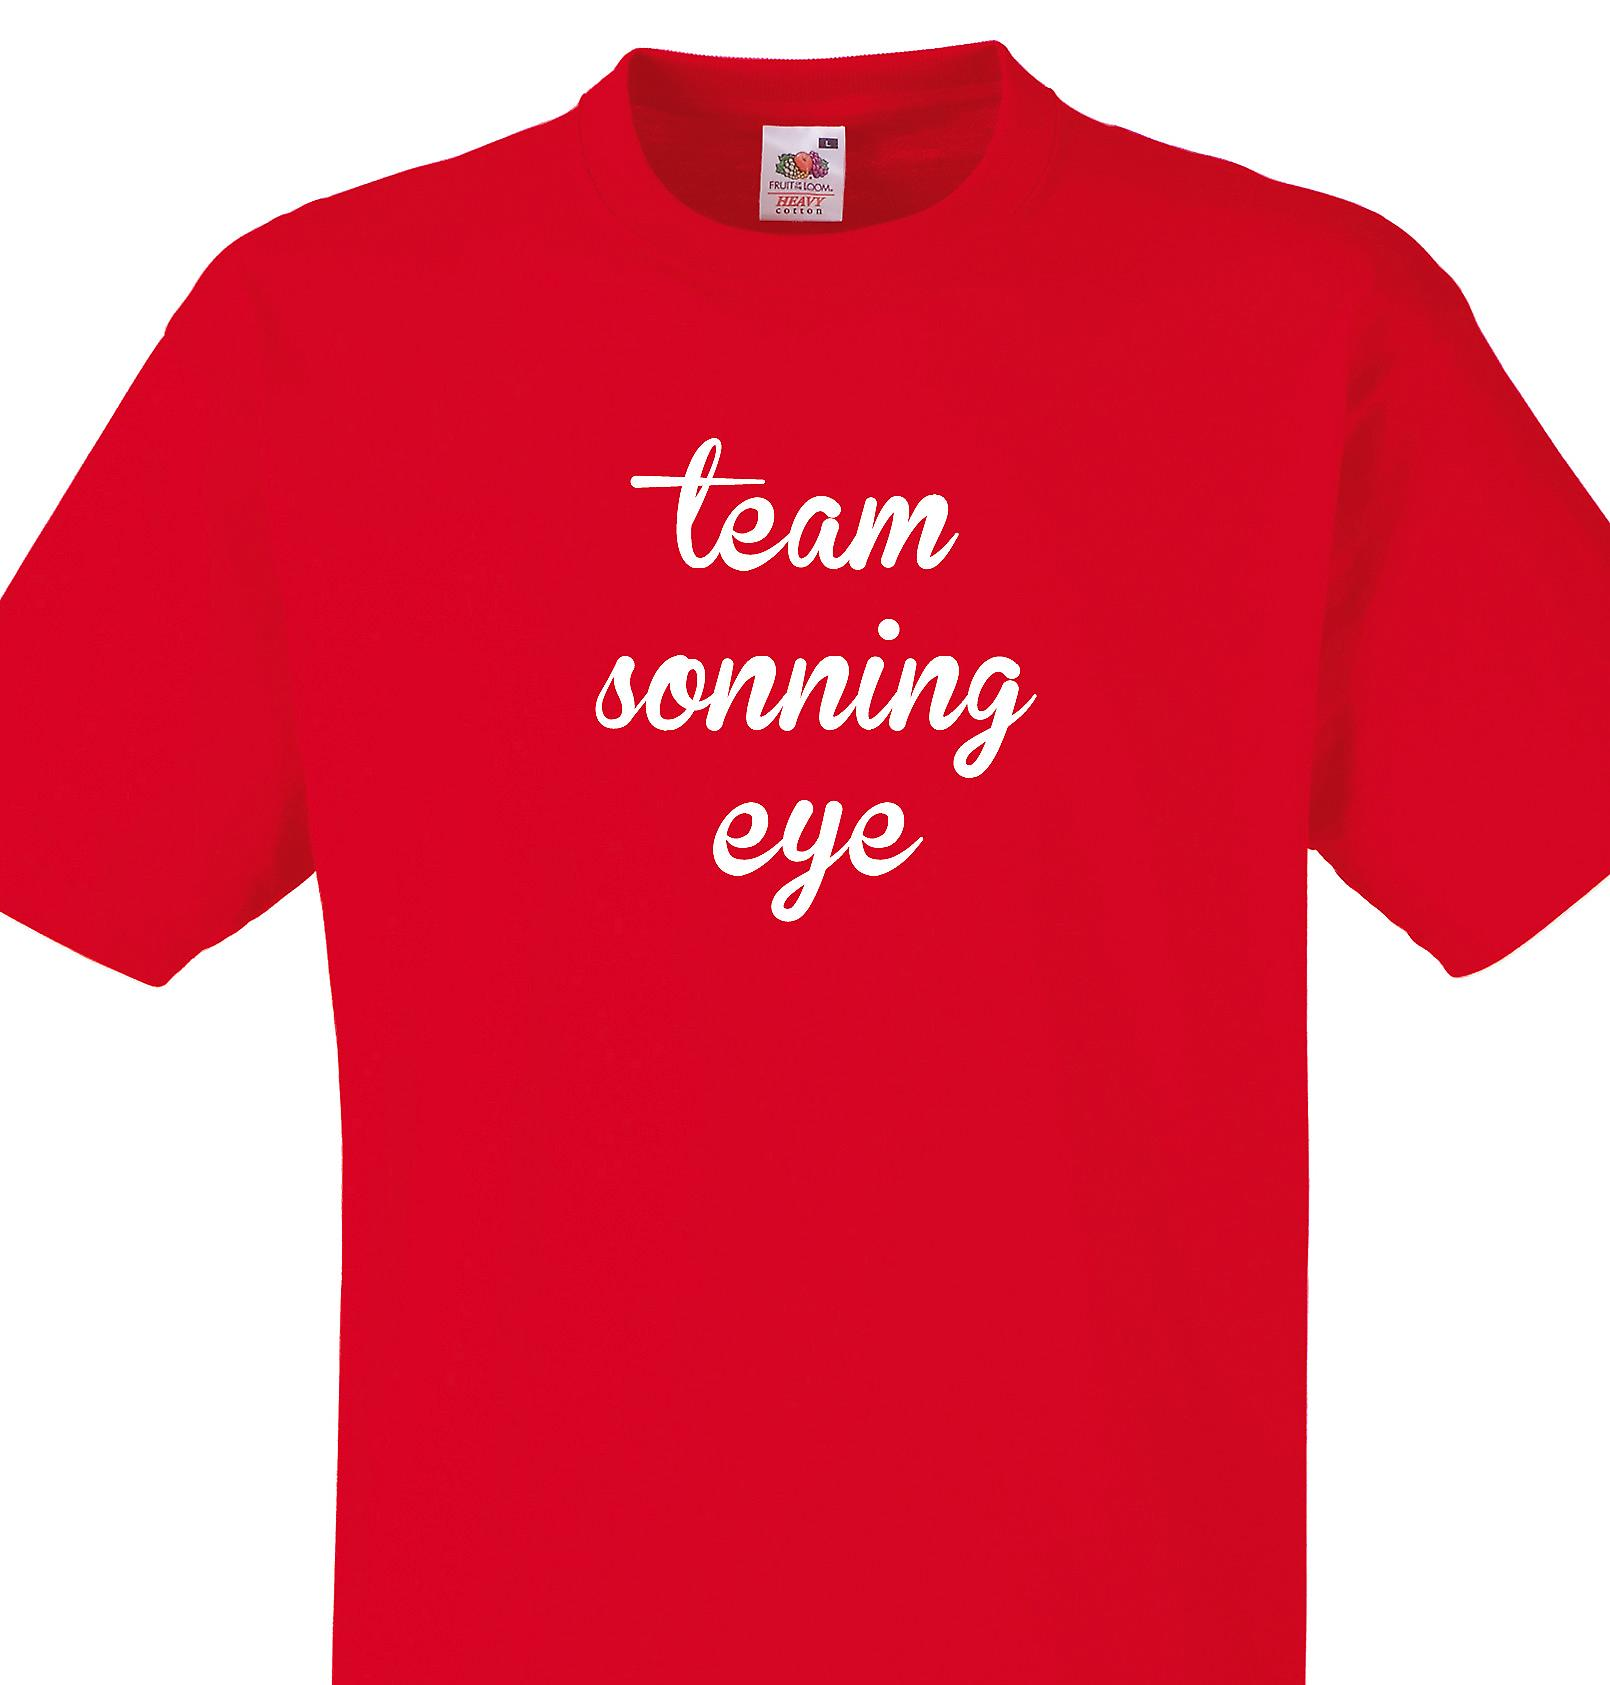 Team Sonning eye Red T shirt